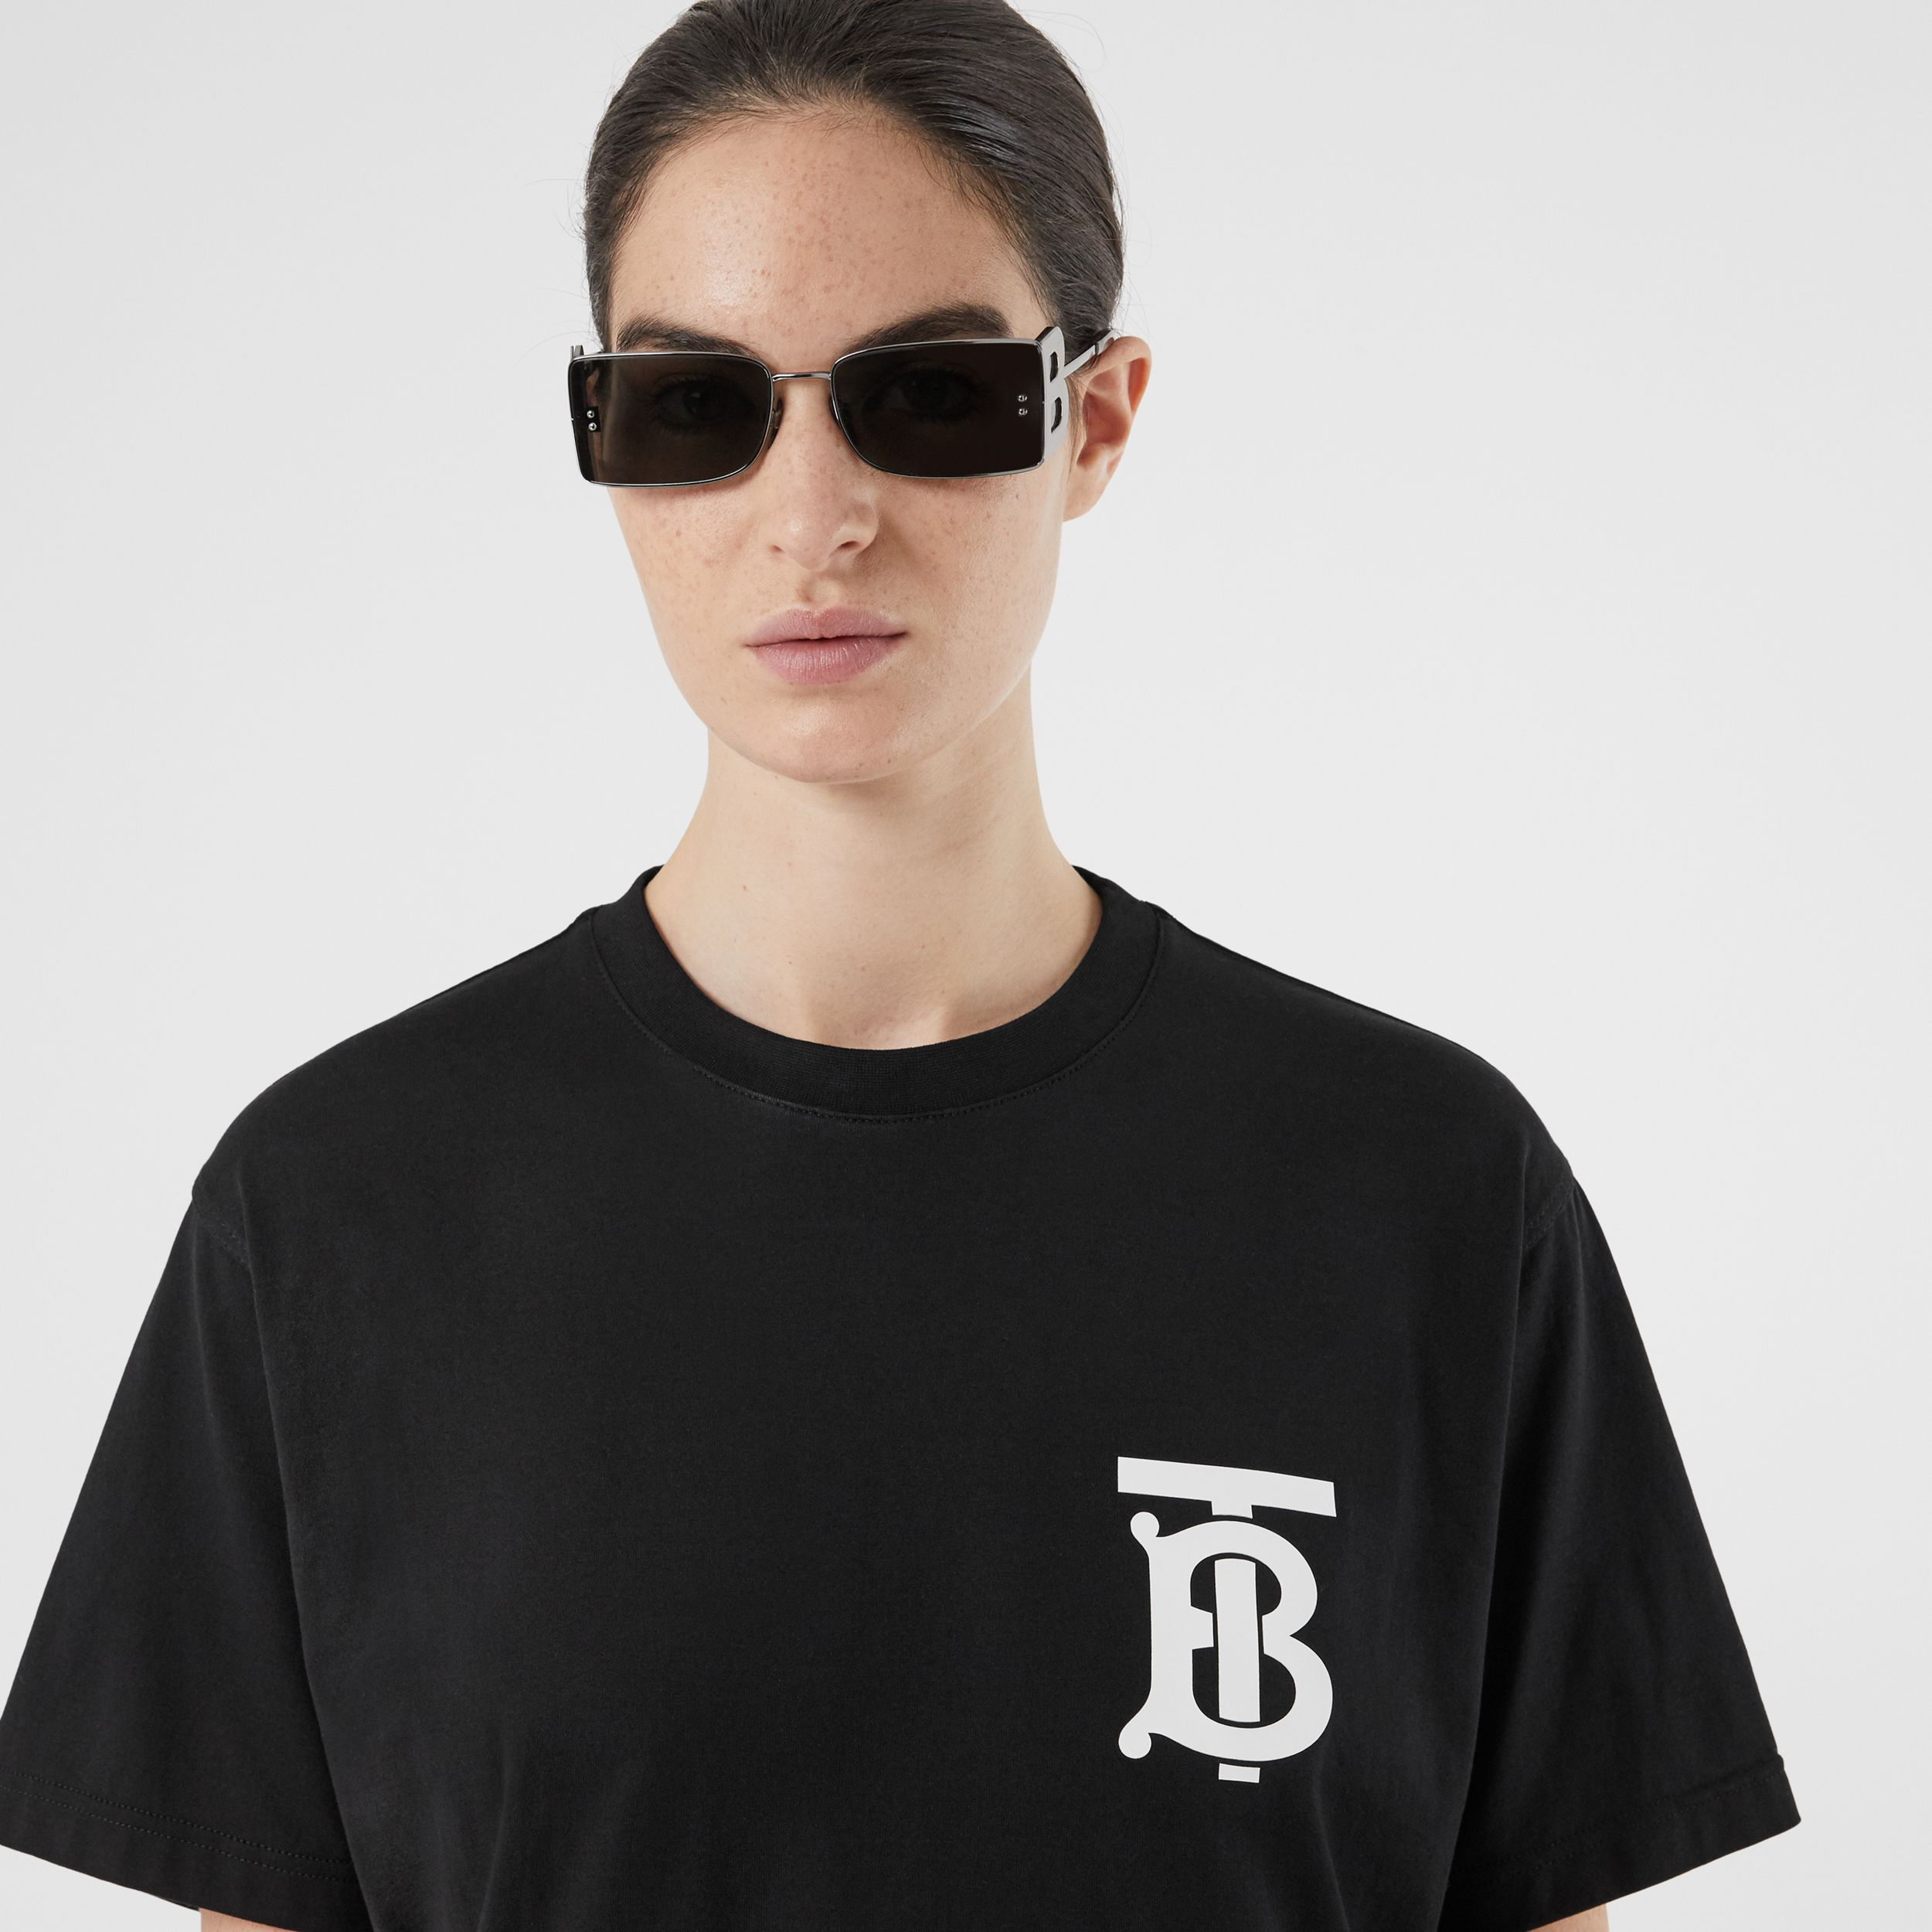 Monogram Motif Cotton Oversized T-shirt in Black - Women | Burberry - 2